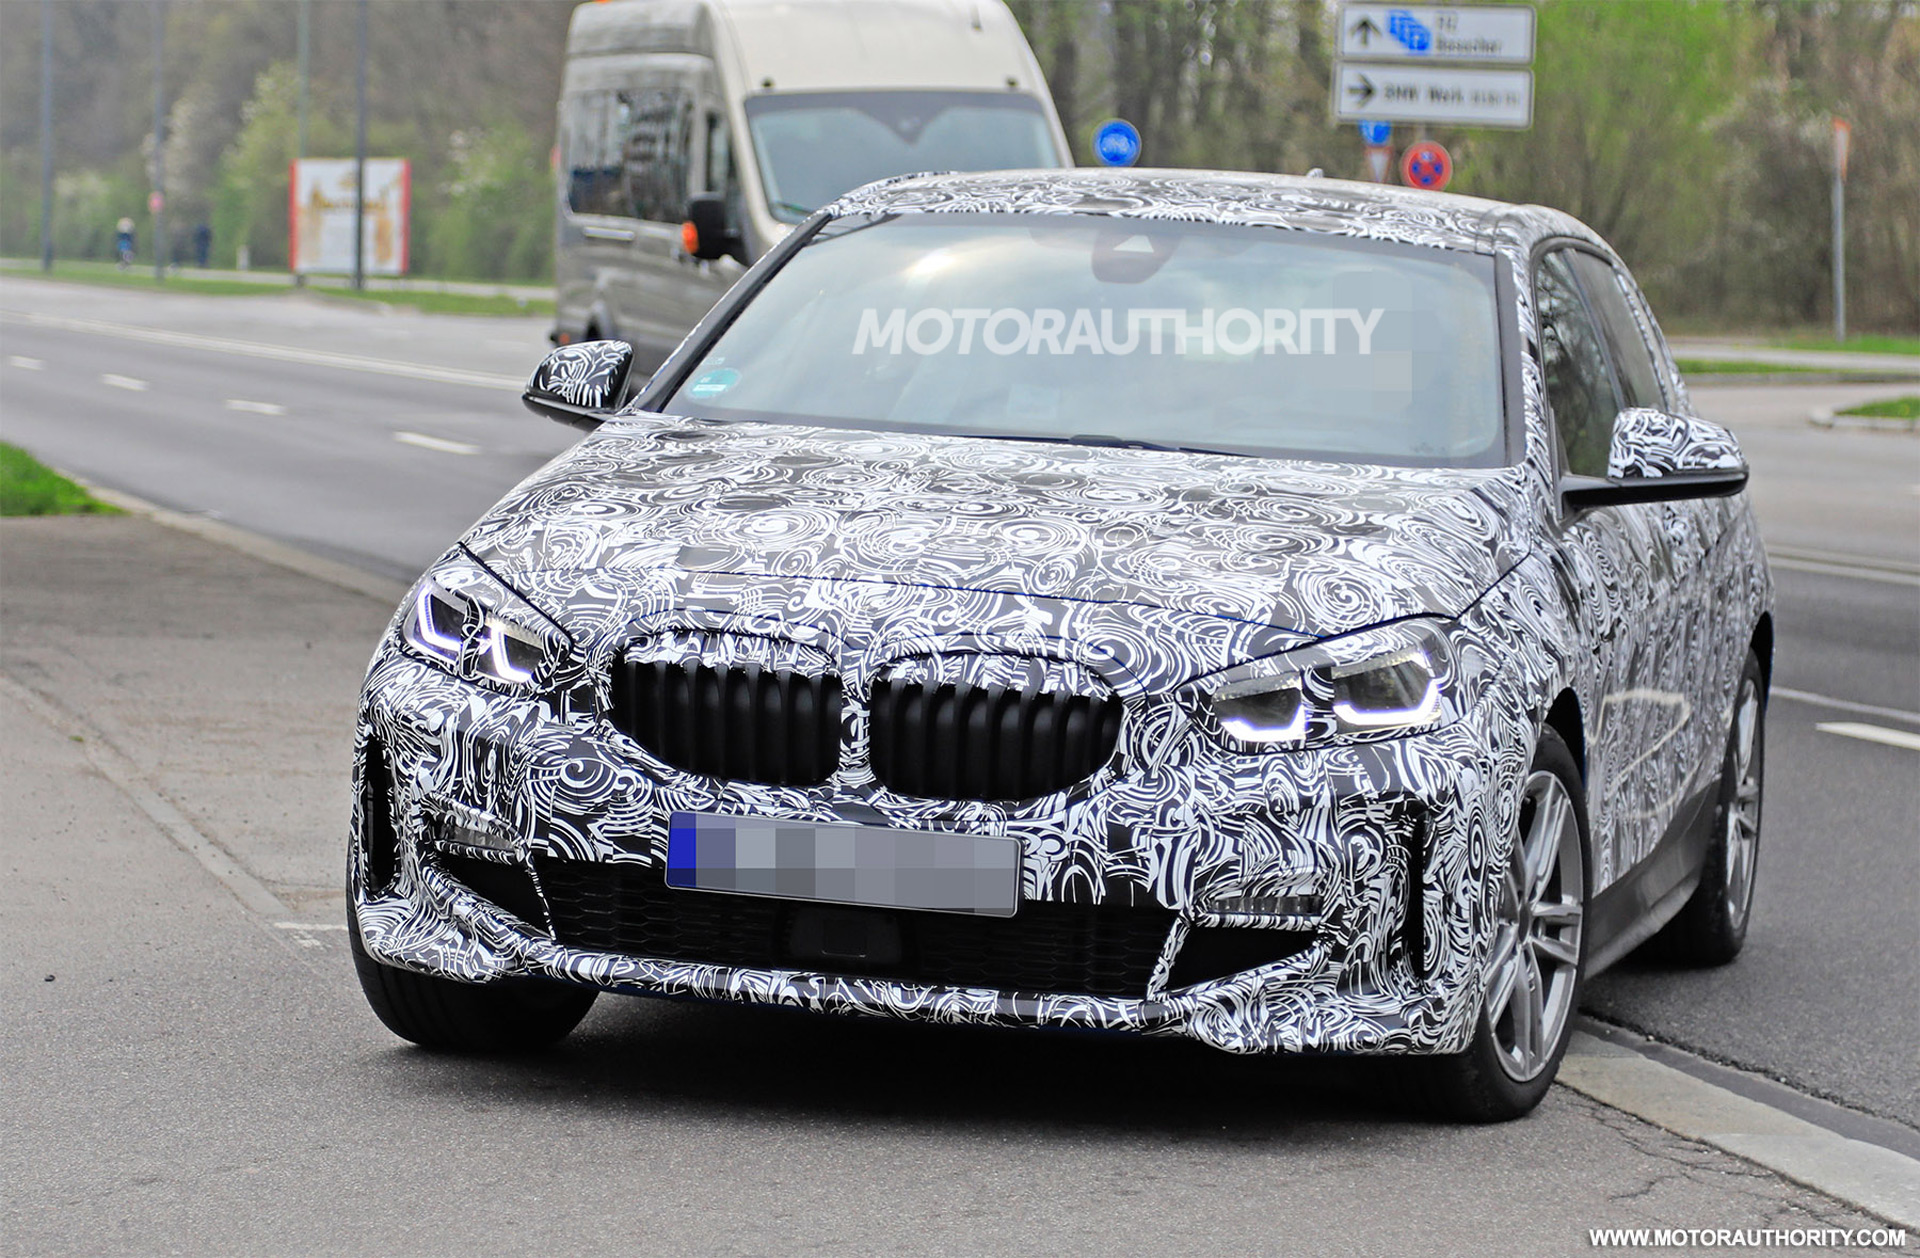 2019 Bmw 1 Series Hatchback Spy Shots And Video